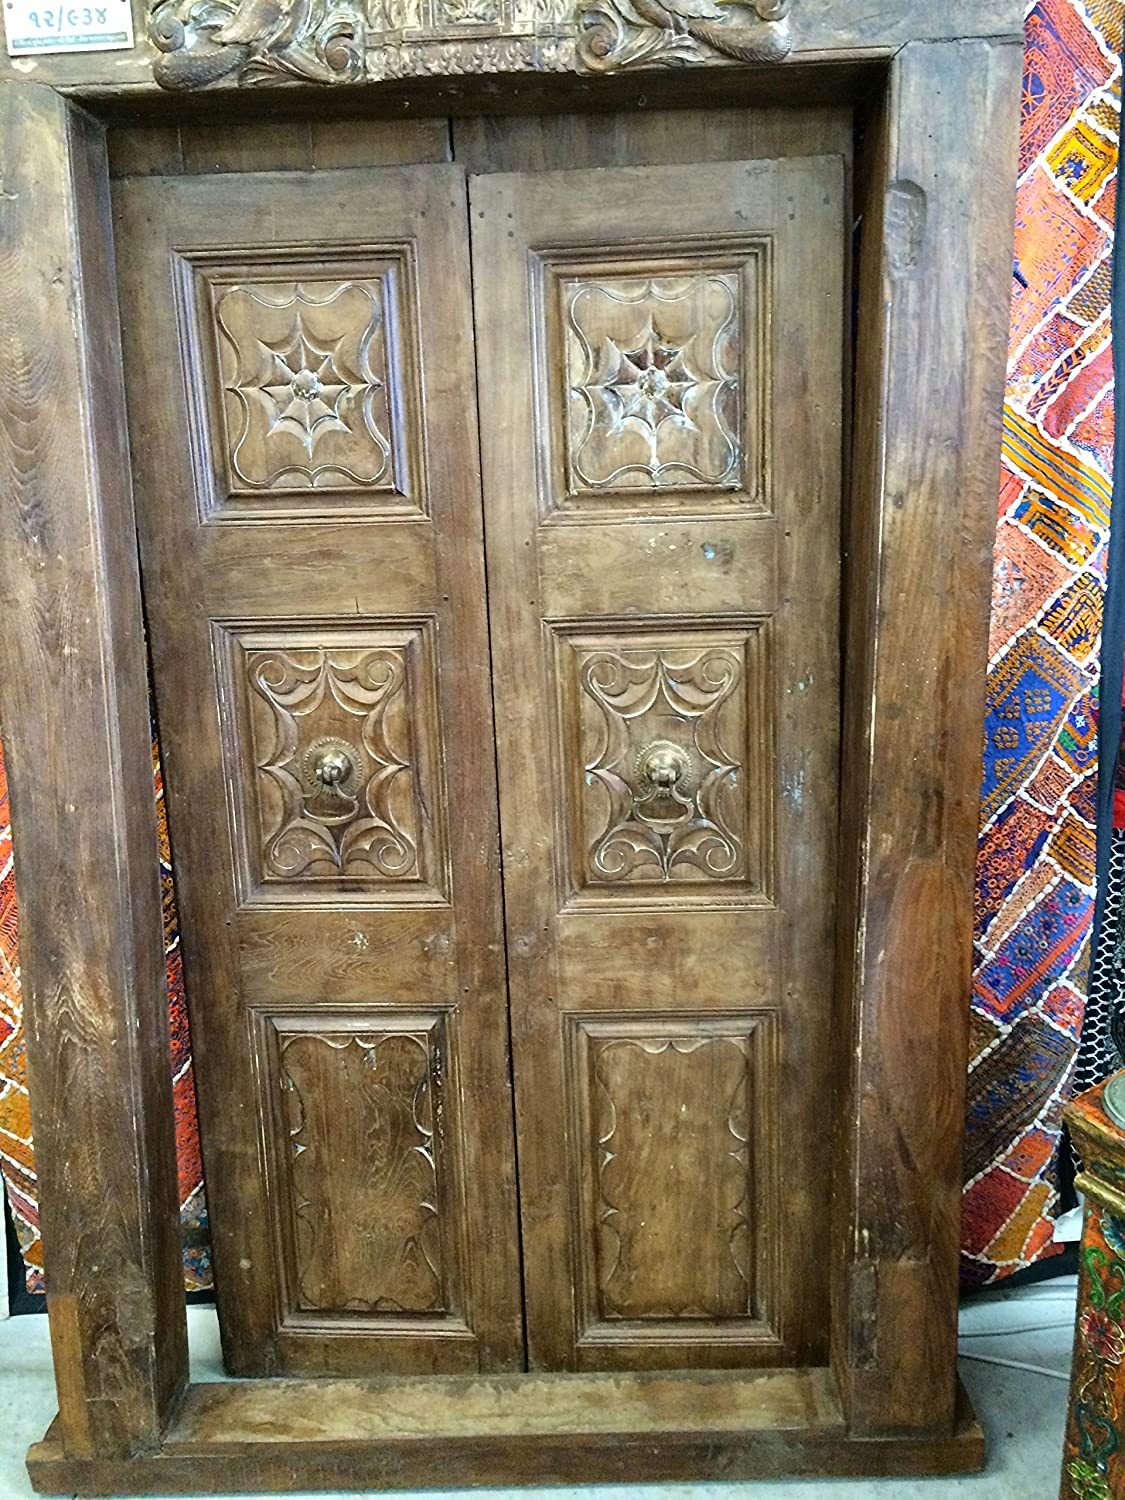 Antique Front Doors Entryways From Around The World Indian Decor India Furniture Indian